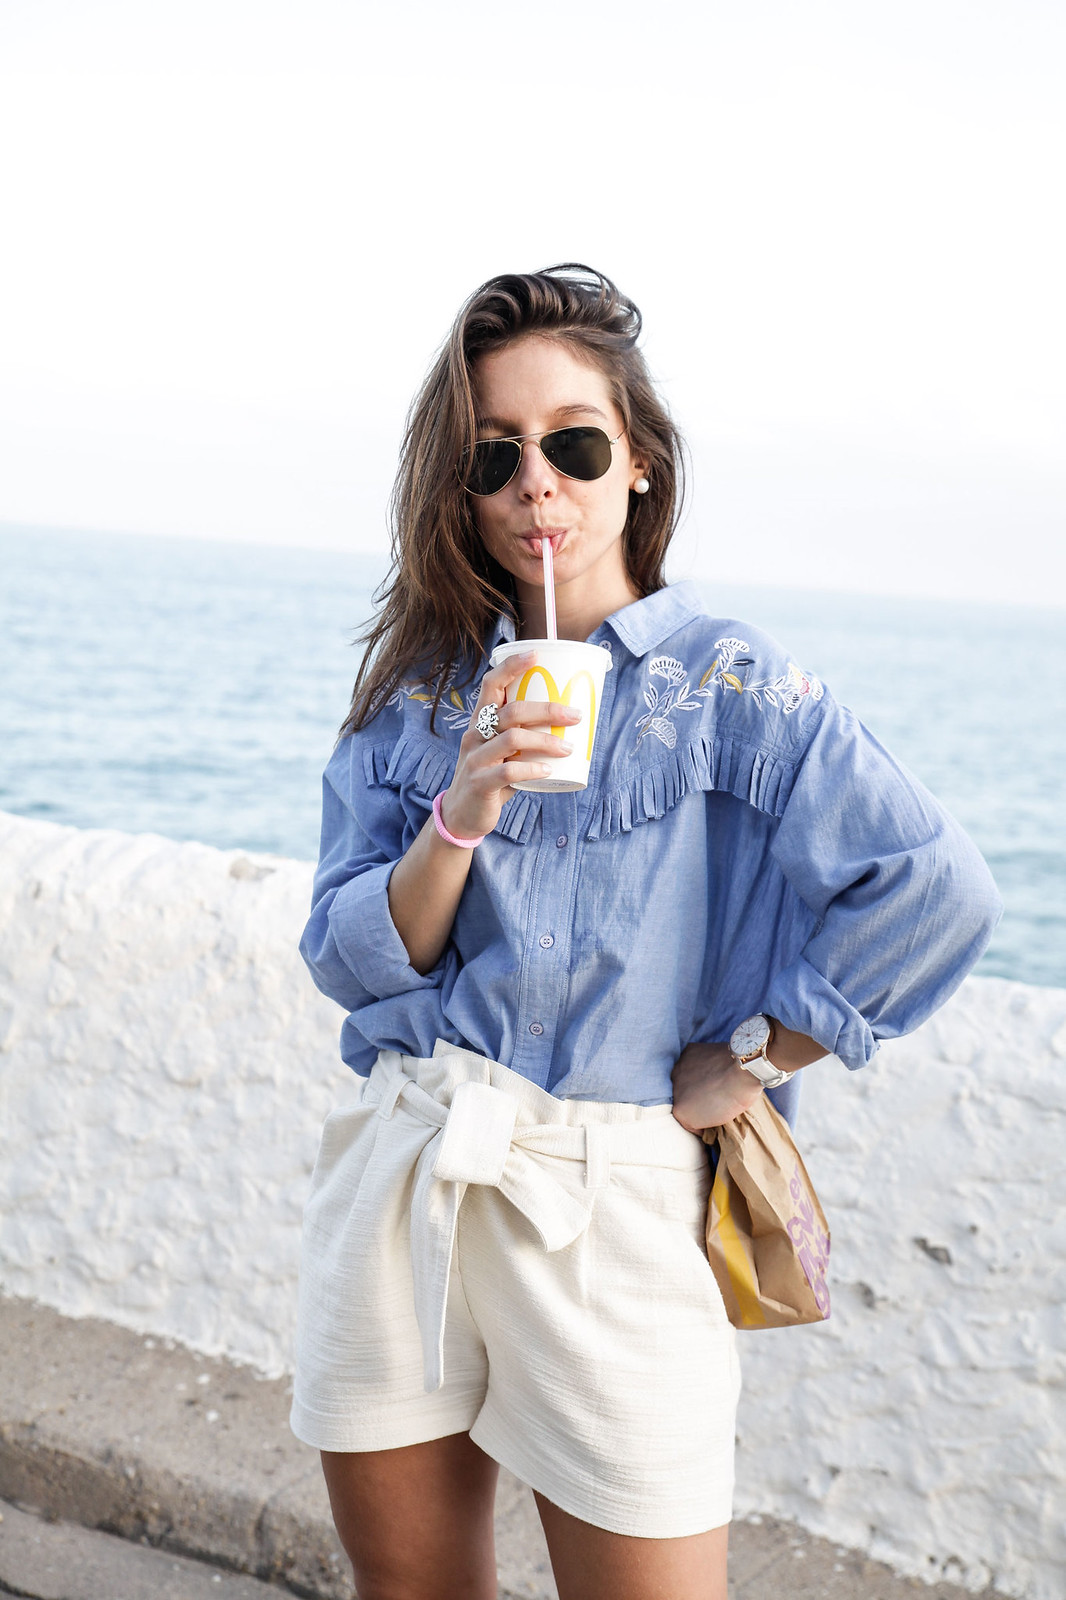 02_camisa_flecos_azul_mysundaymorning_fringed_shirt_fringed_theguestgirl_influencer_inspo_outft_summer_laura_santolaria_public_desire_denim_shoes_mc_donalds